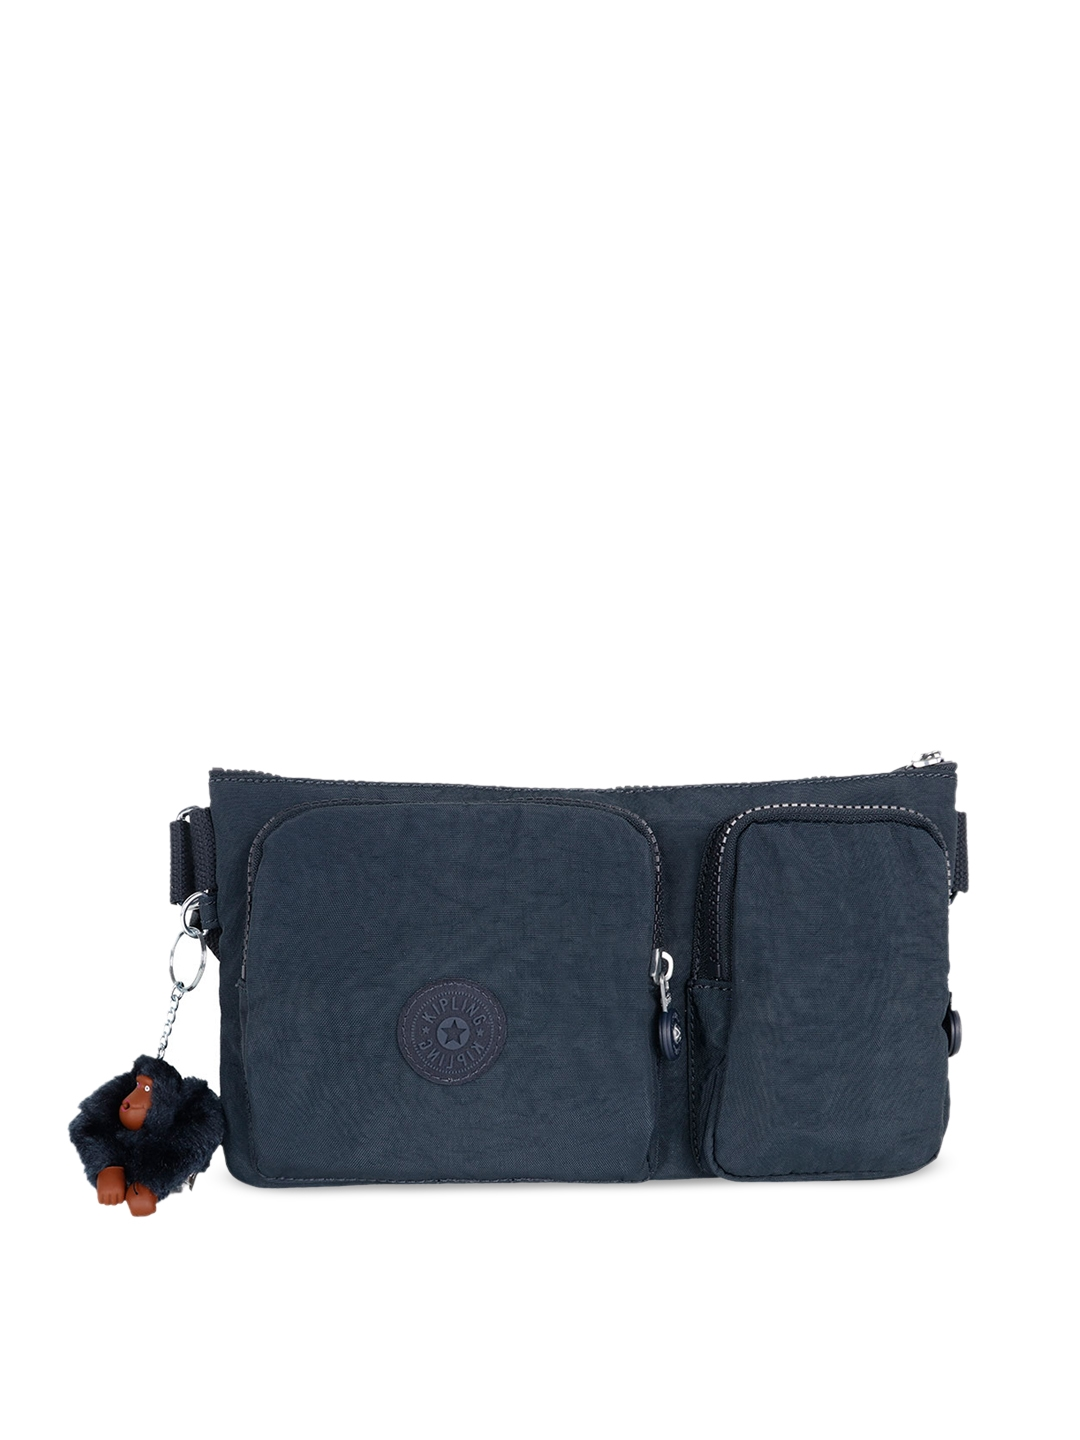 a055a1557cfc Buy Kipling Blue Solid Waist Pouch - Travel Accessory for Unisex ...